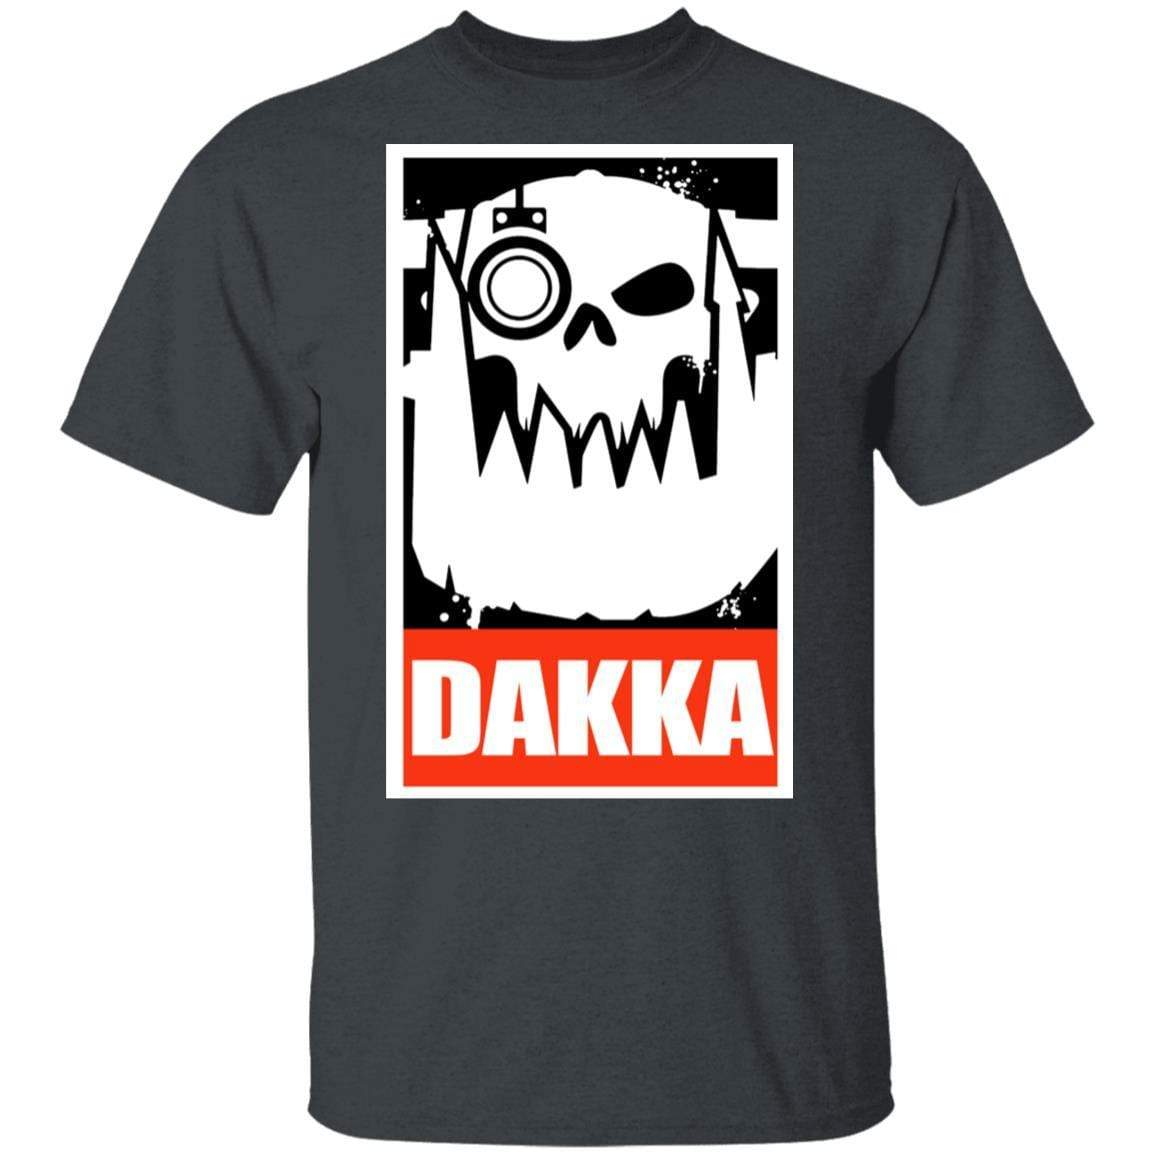 Orks Dakka Tabletop Wargaming And Miniatures Addict T-Shirts, Hoodies 1049-9957-88767417-48192 - Tee Ript